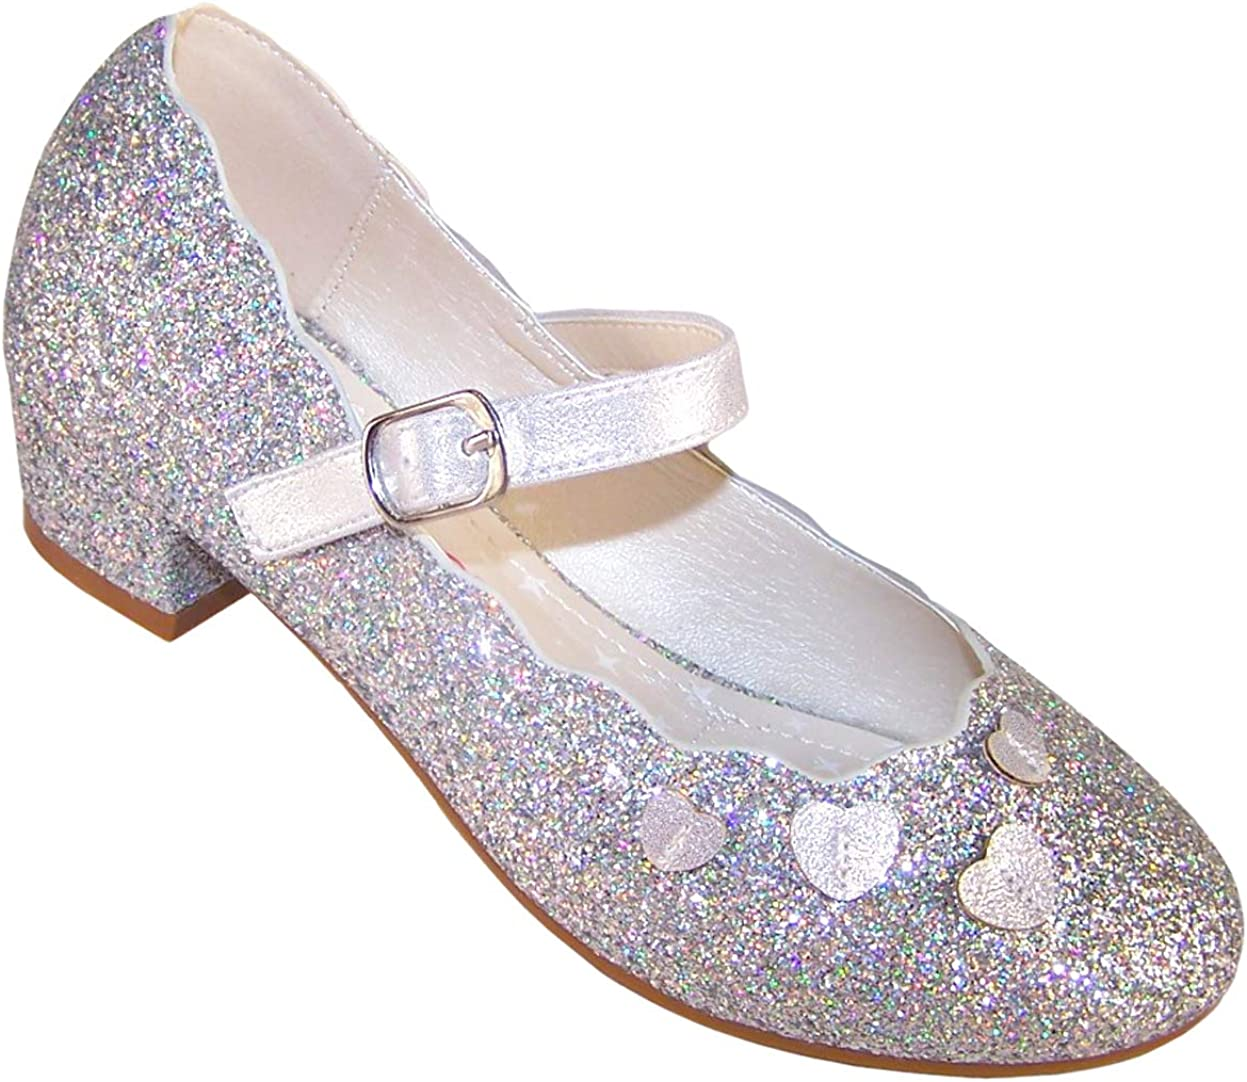 Girls Low Heeled sillver Sparkly Party